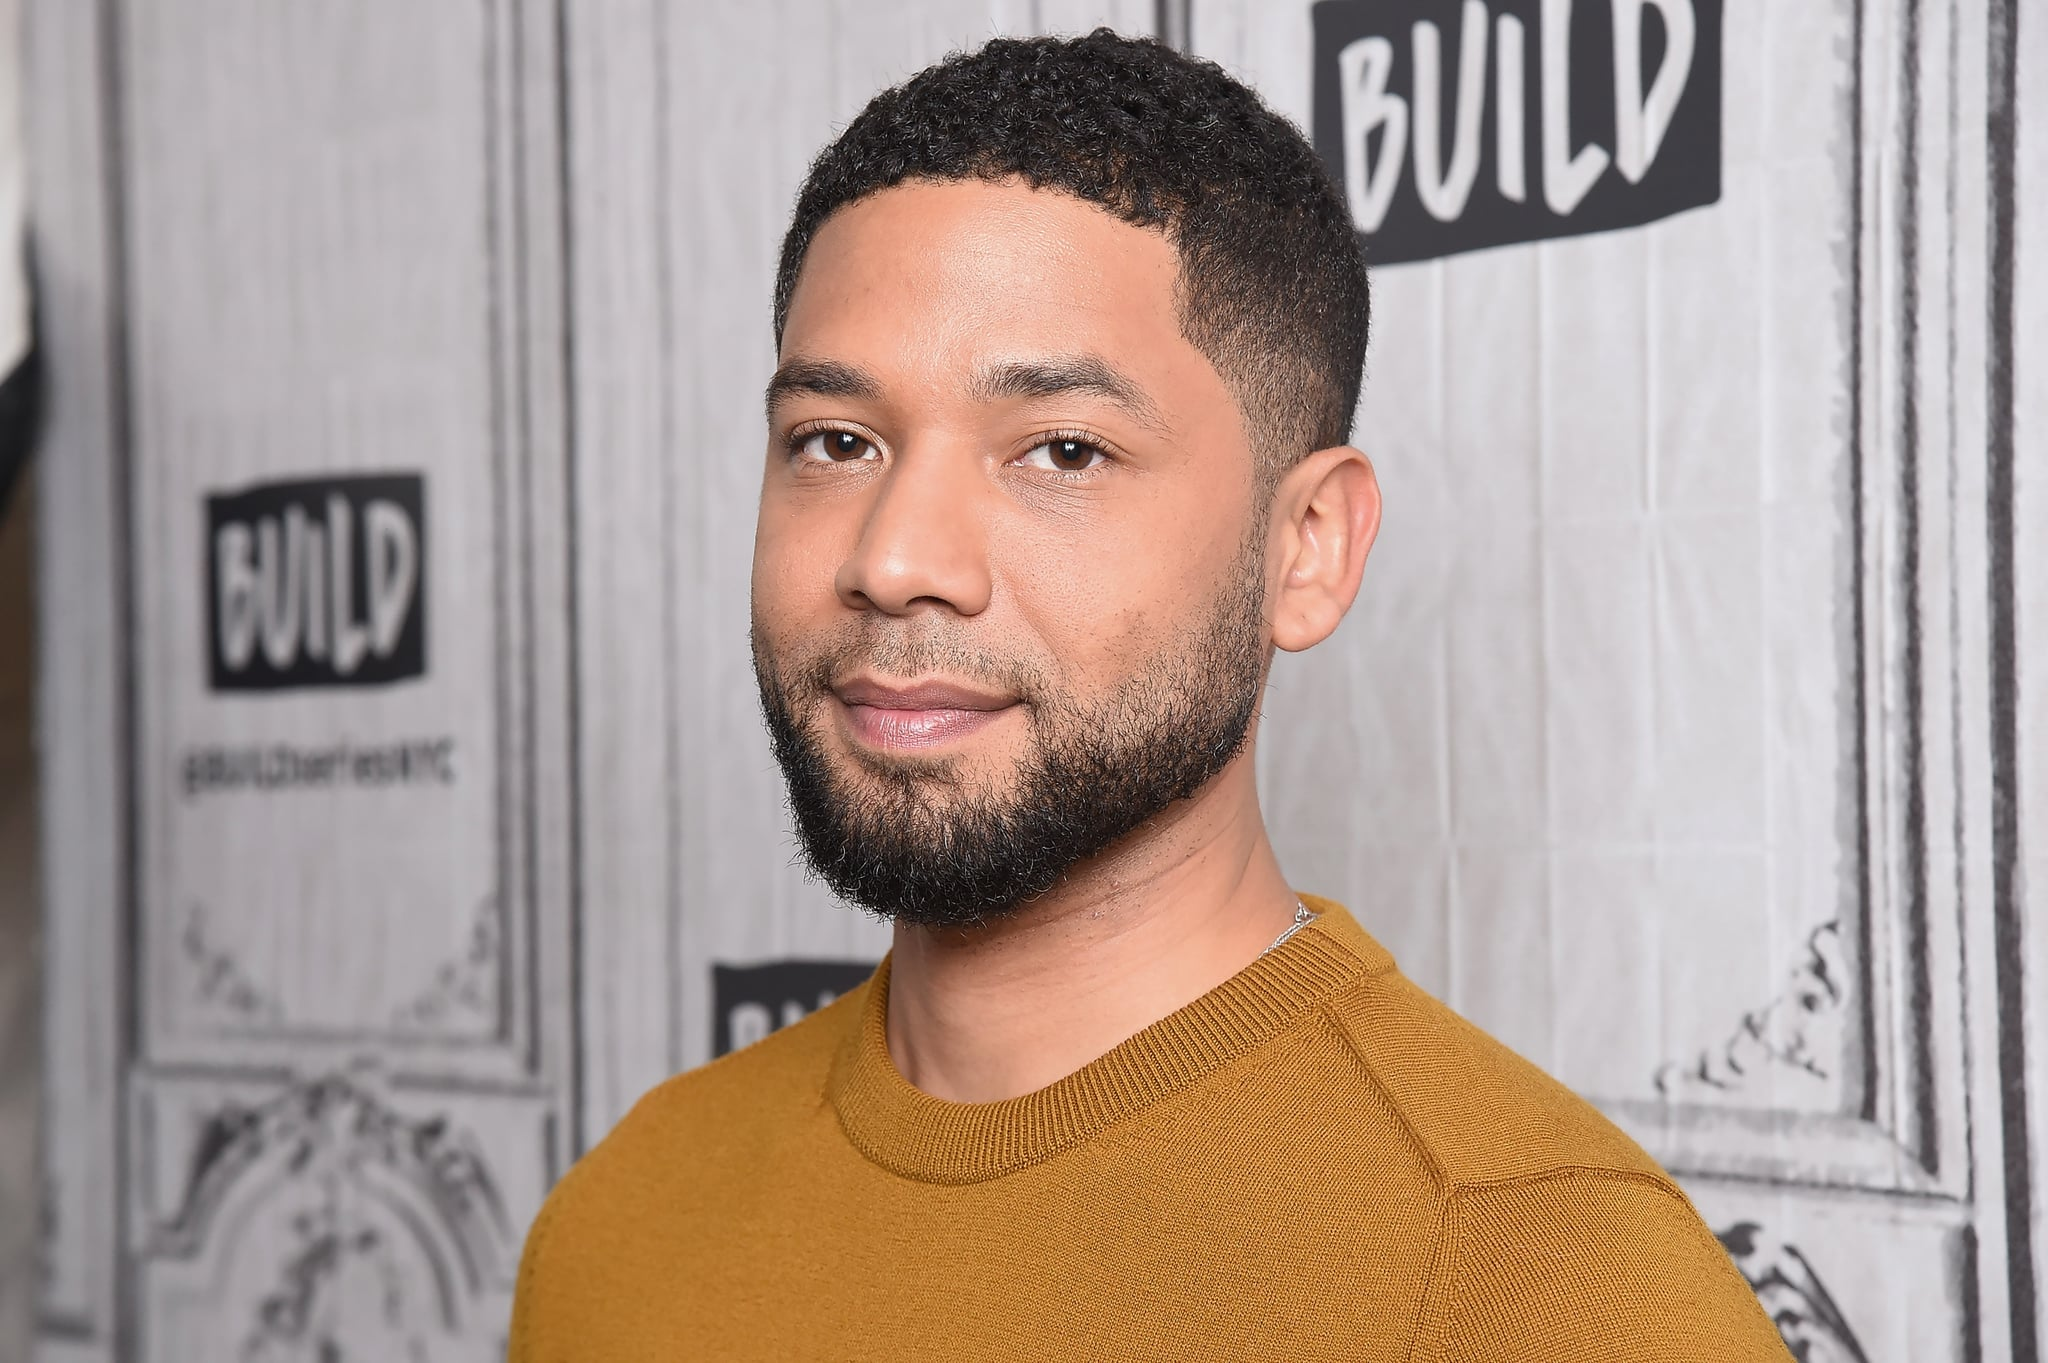 NEW YORK, NY - NOVEMBER 14:  Actor and activist Jussie Smollett visits Build Series to discuss the TV show 'Empire' and his work for charitable causes at Build Studio on November 14, 2018 in New York City.  (Photo by Gary Gershoff/WireImage)